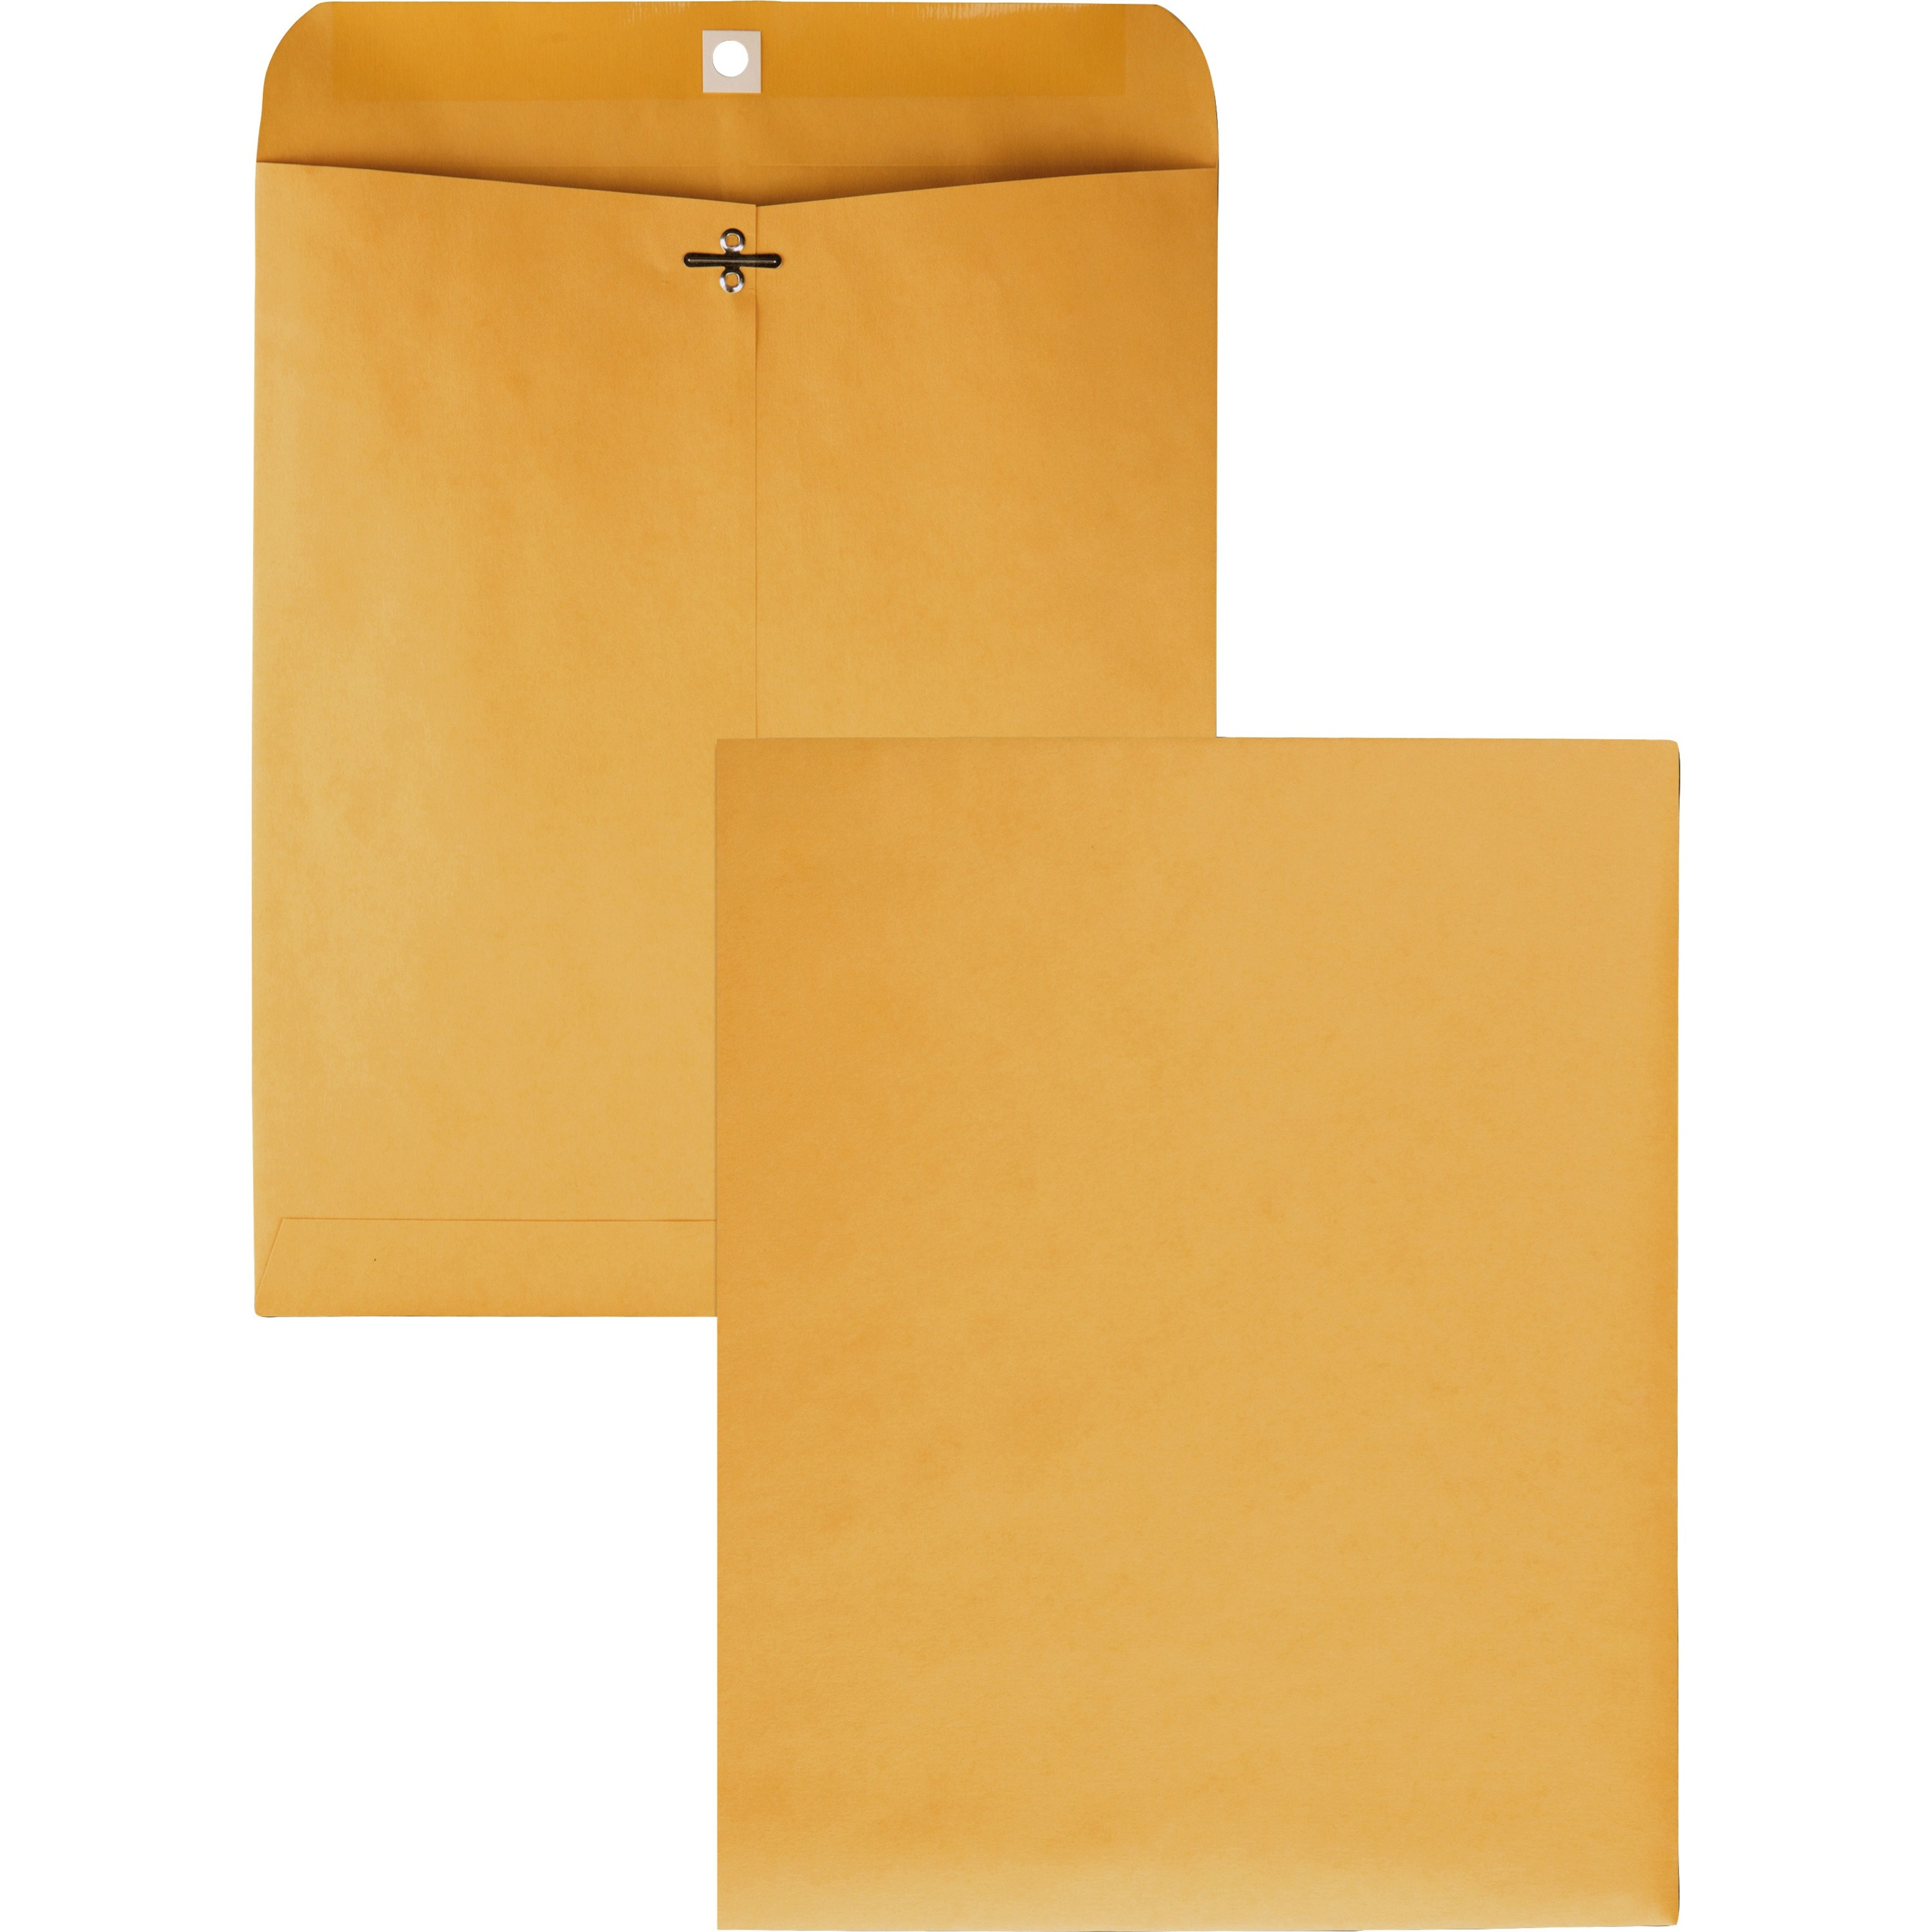 Clasp Envelope, 10 x 12, 28lb, Brown Kraft, 100/Box